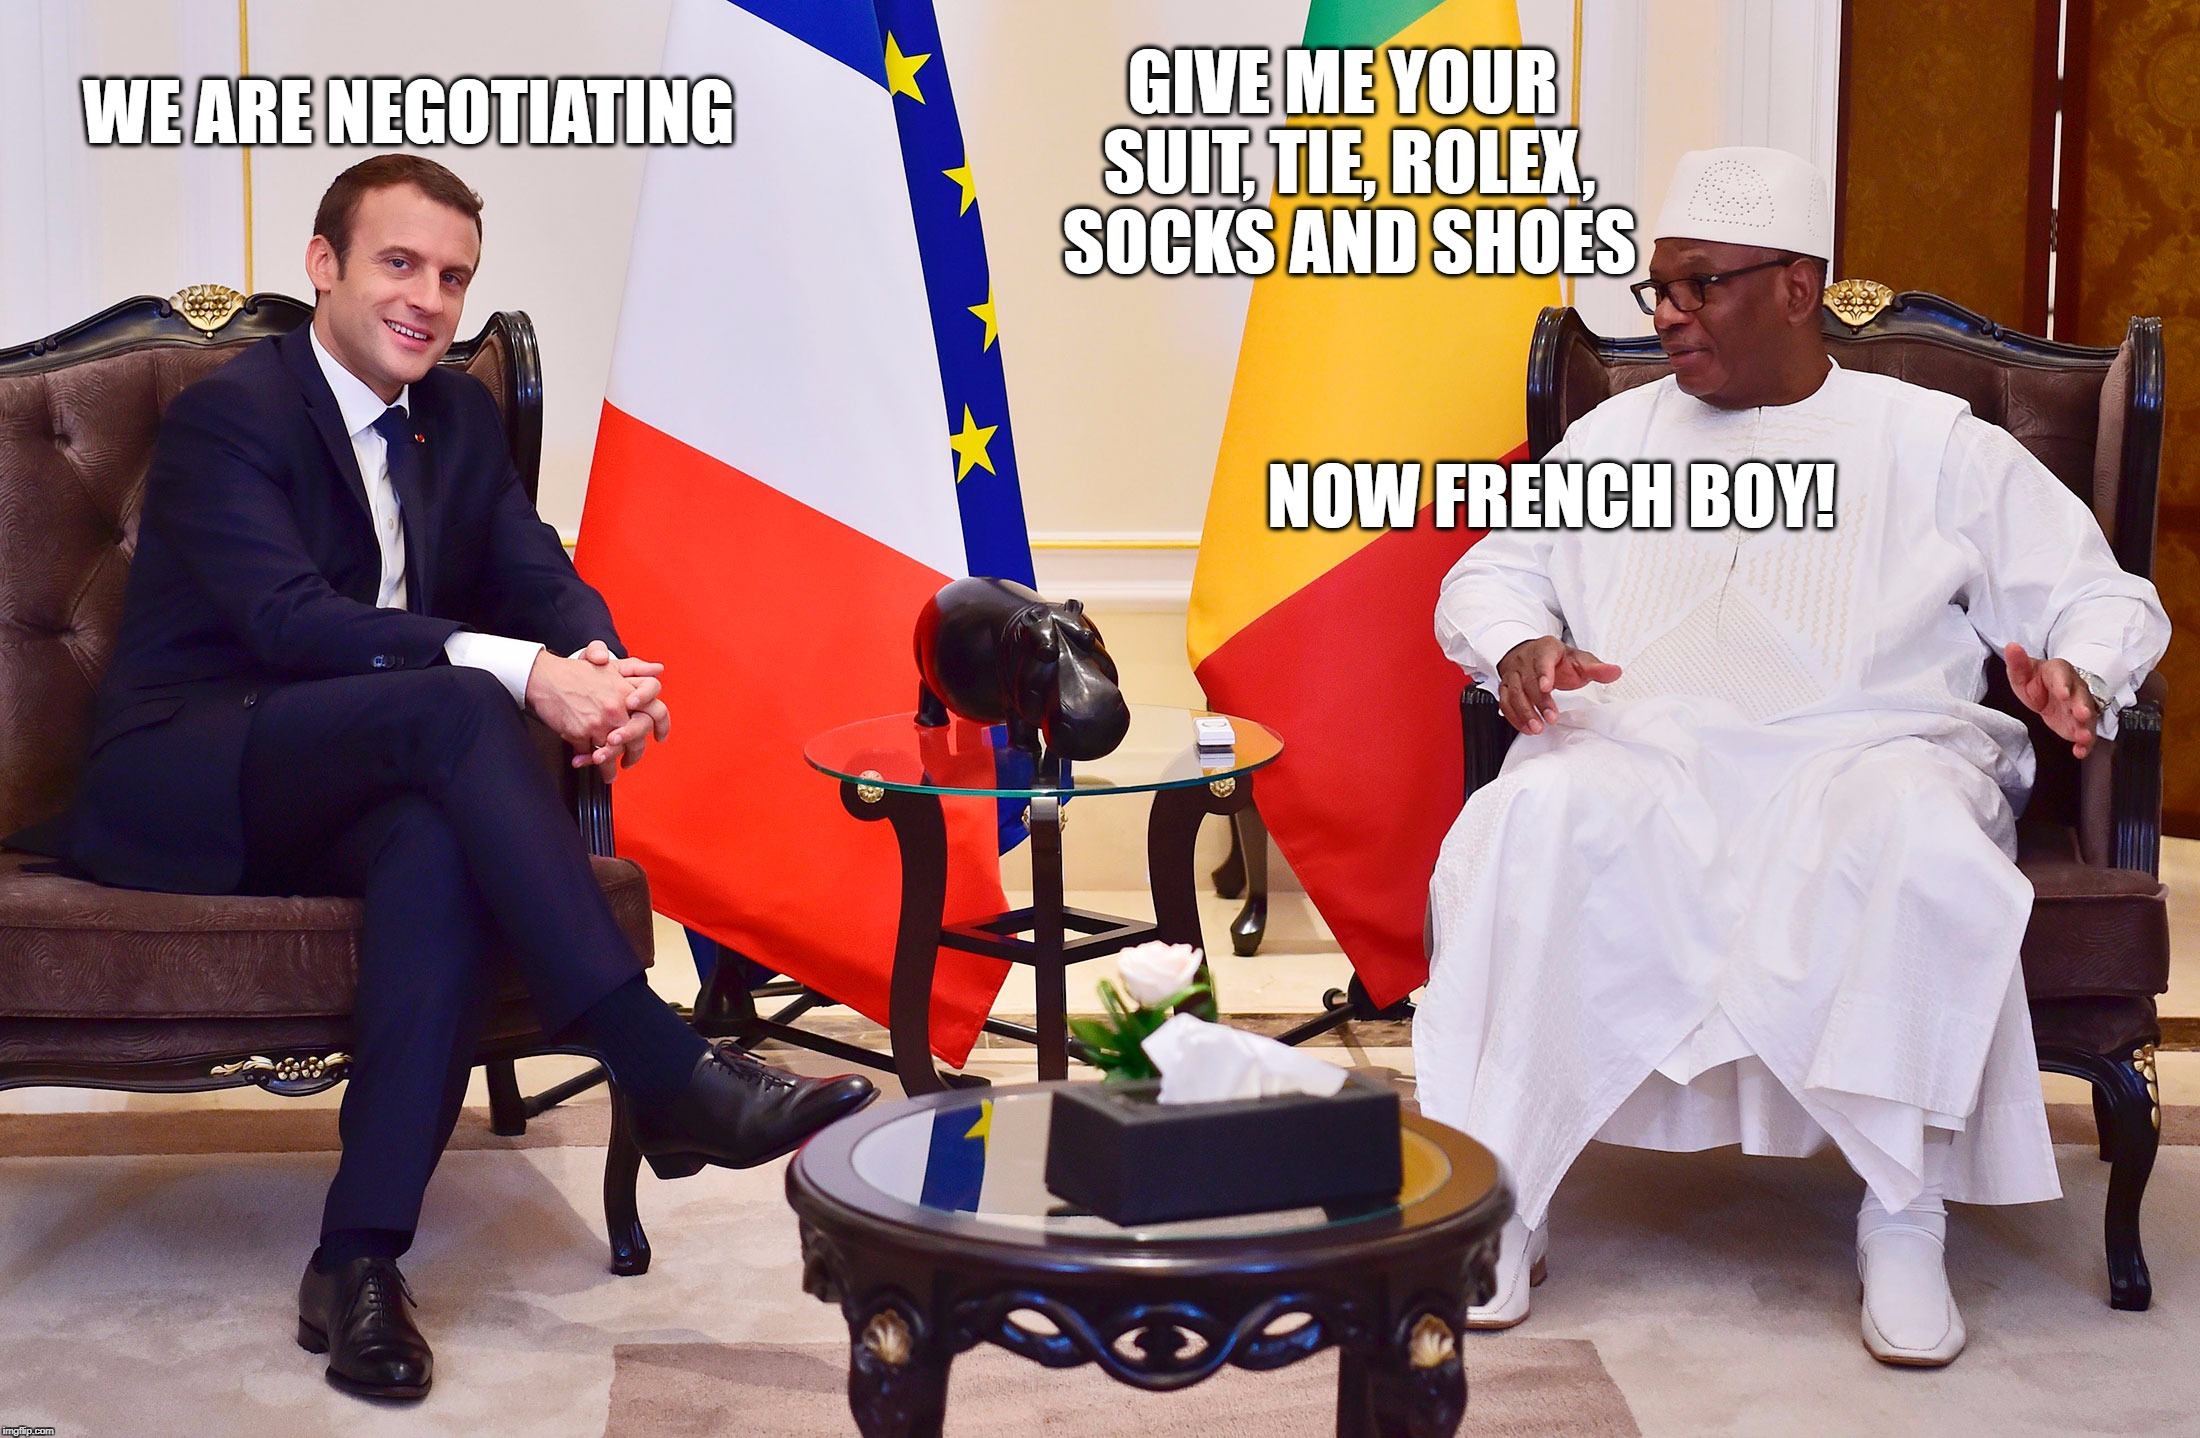 Macron's trade deal | GIVE ME YOUR SUIT, TIE, ROLEX, SOCKS AND SHOES NOW FRENCH BOY! WE ARE NEGOTIATING | image tagged in emmanuel macron | made w/ Imgflip meme maker